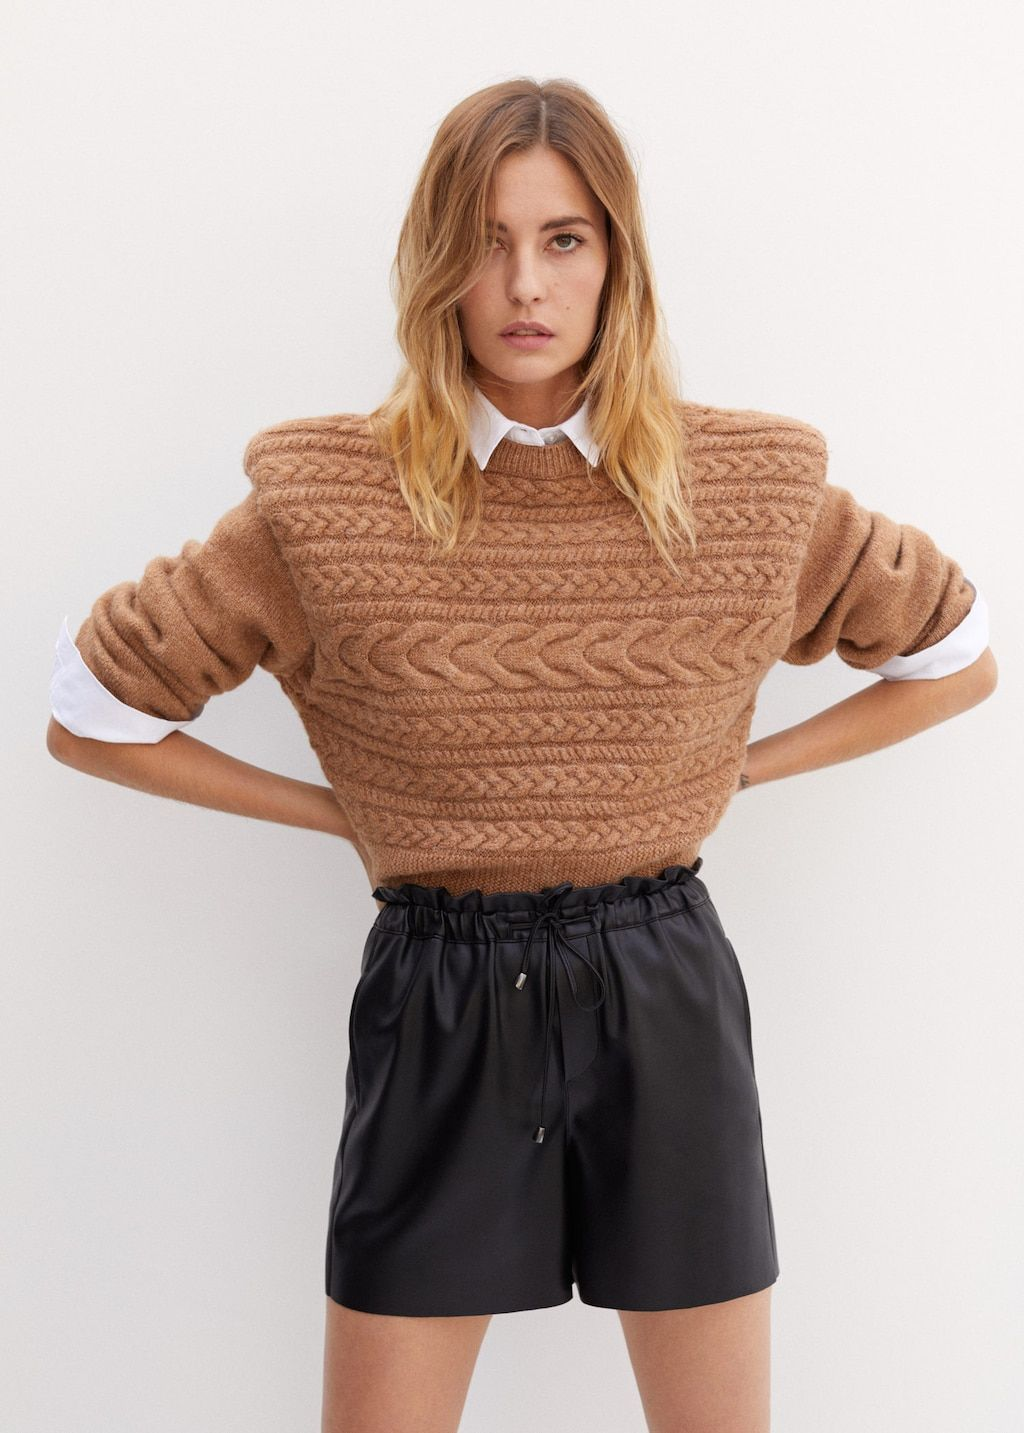 shop-mango-braided-knitted-sweater